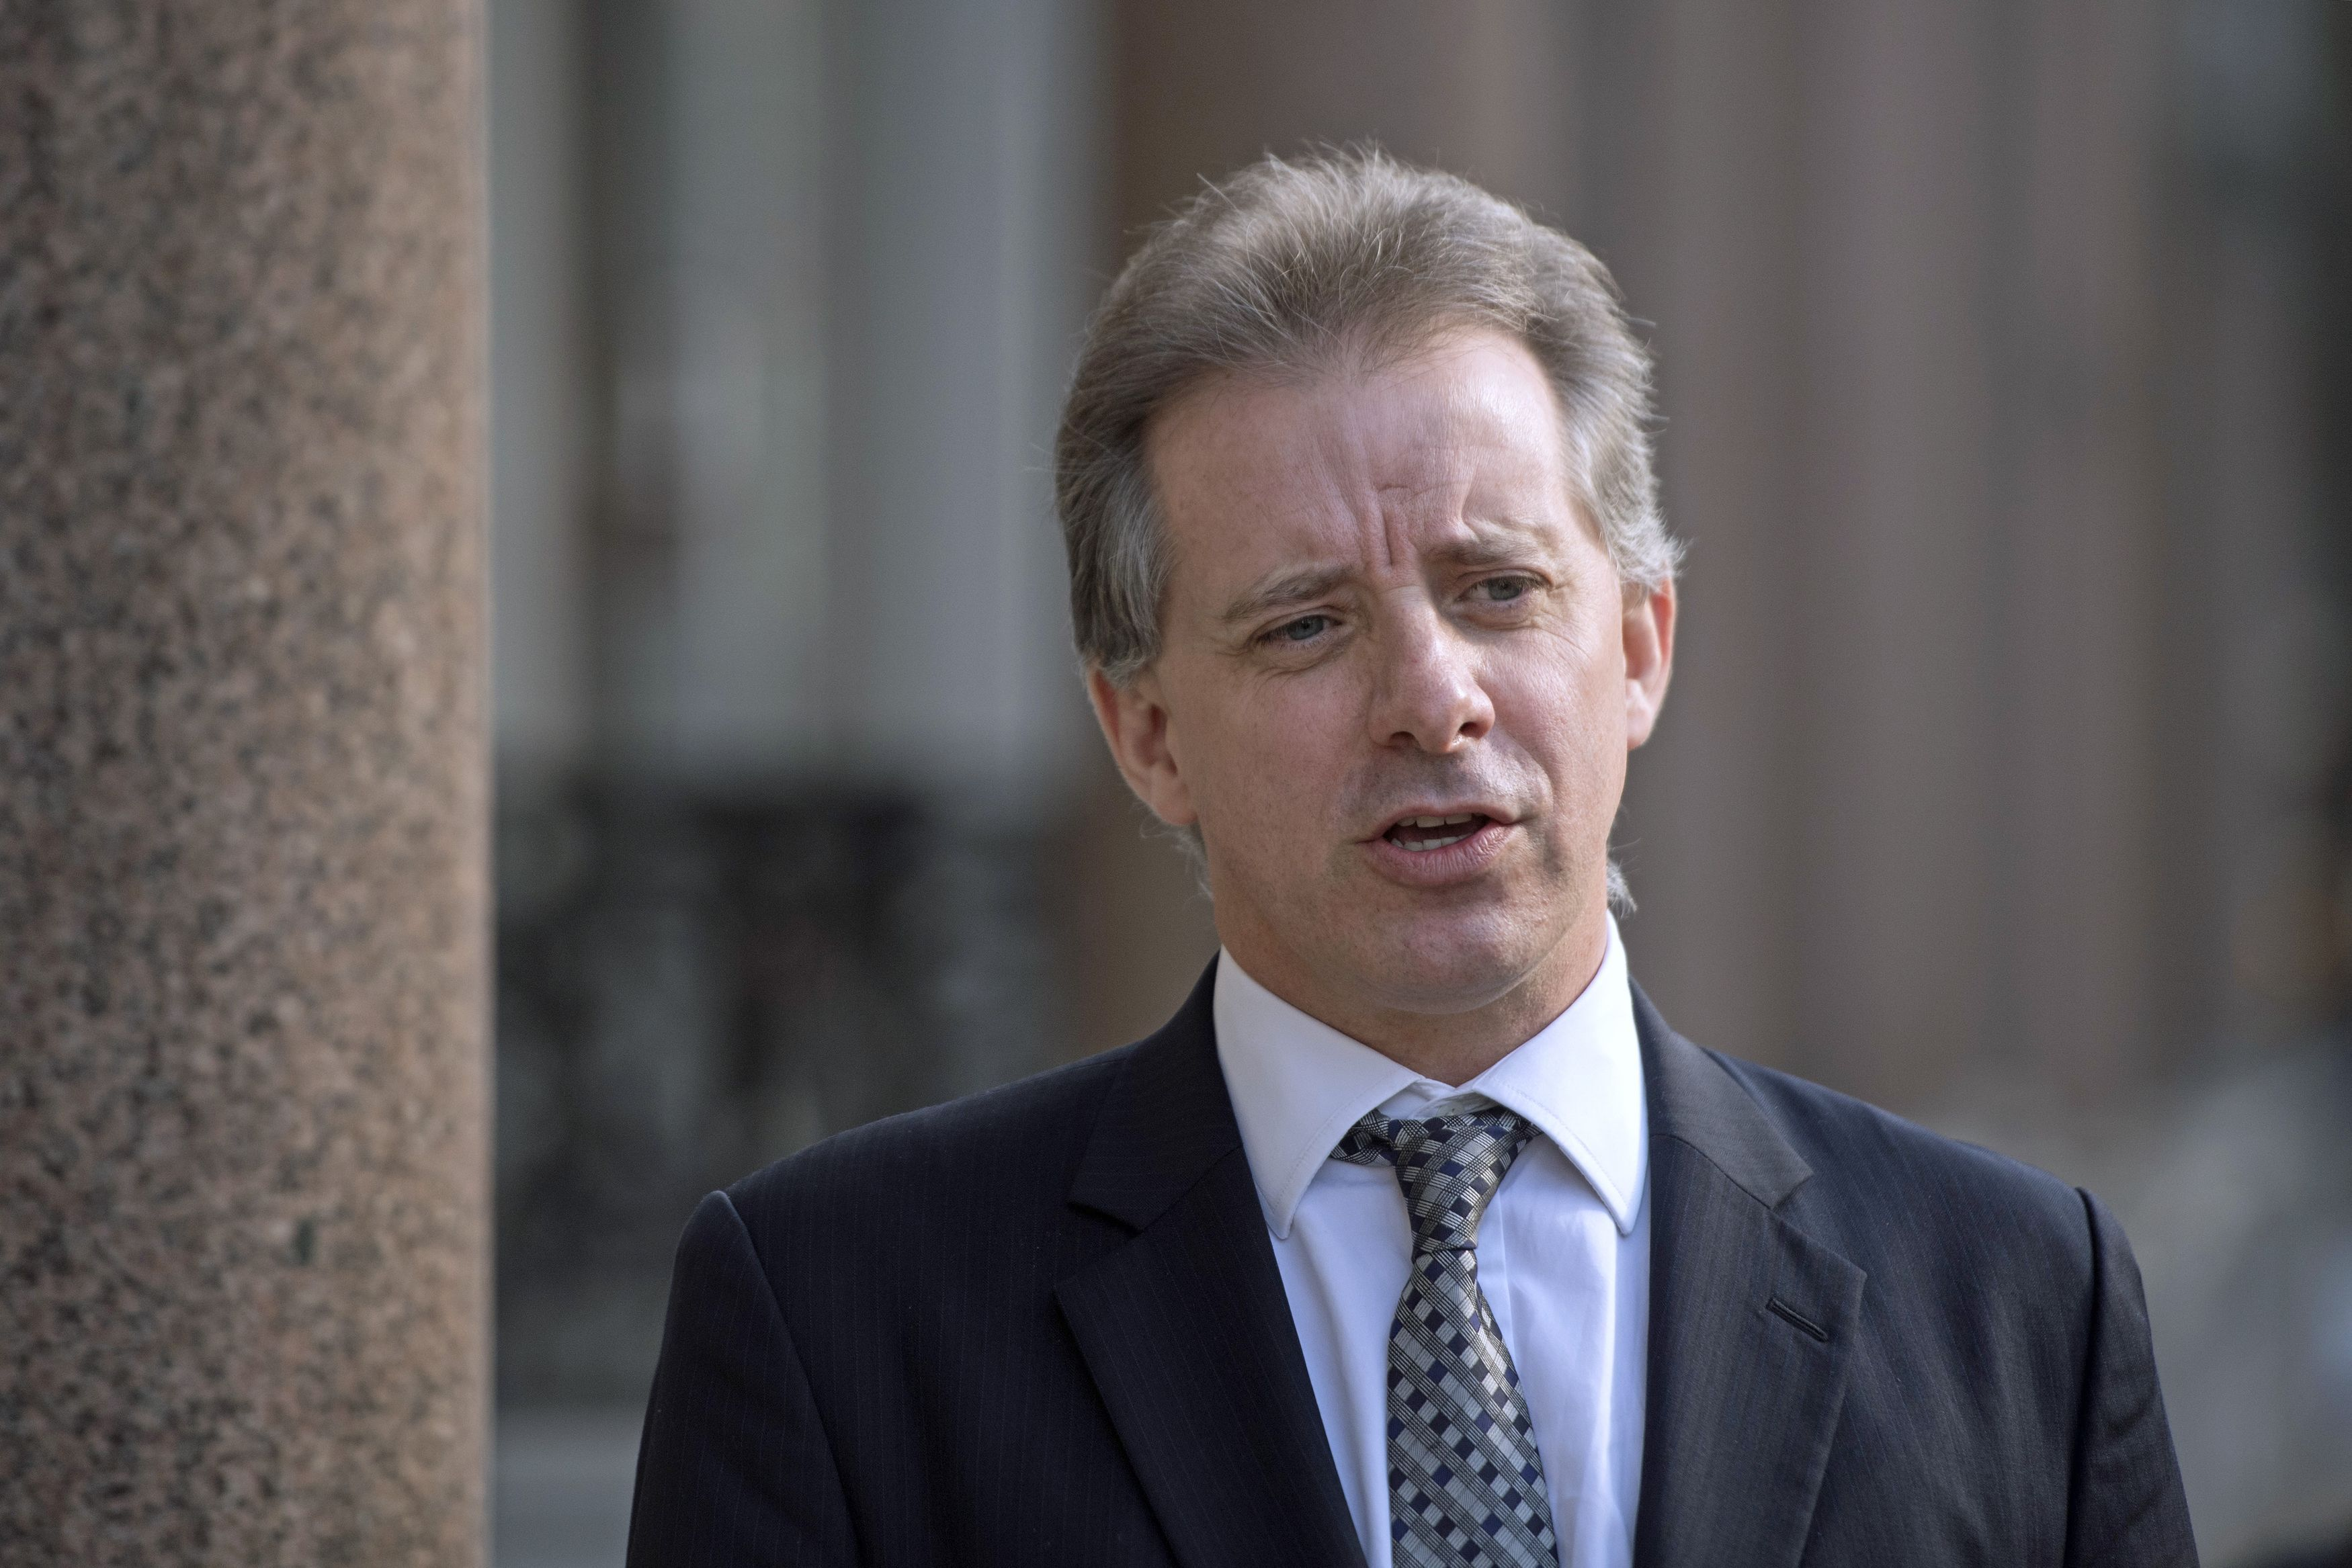 Christopher Steele, the former MI6 agent who compiled a dossier on Donald Trump, in London in March, 2017